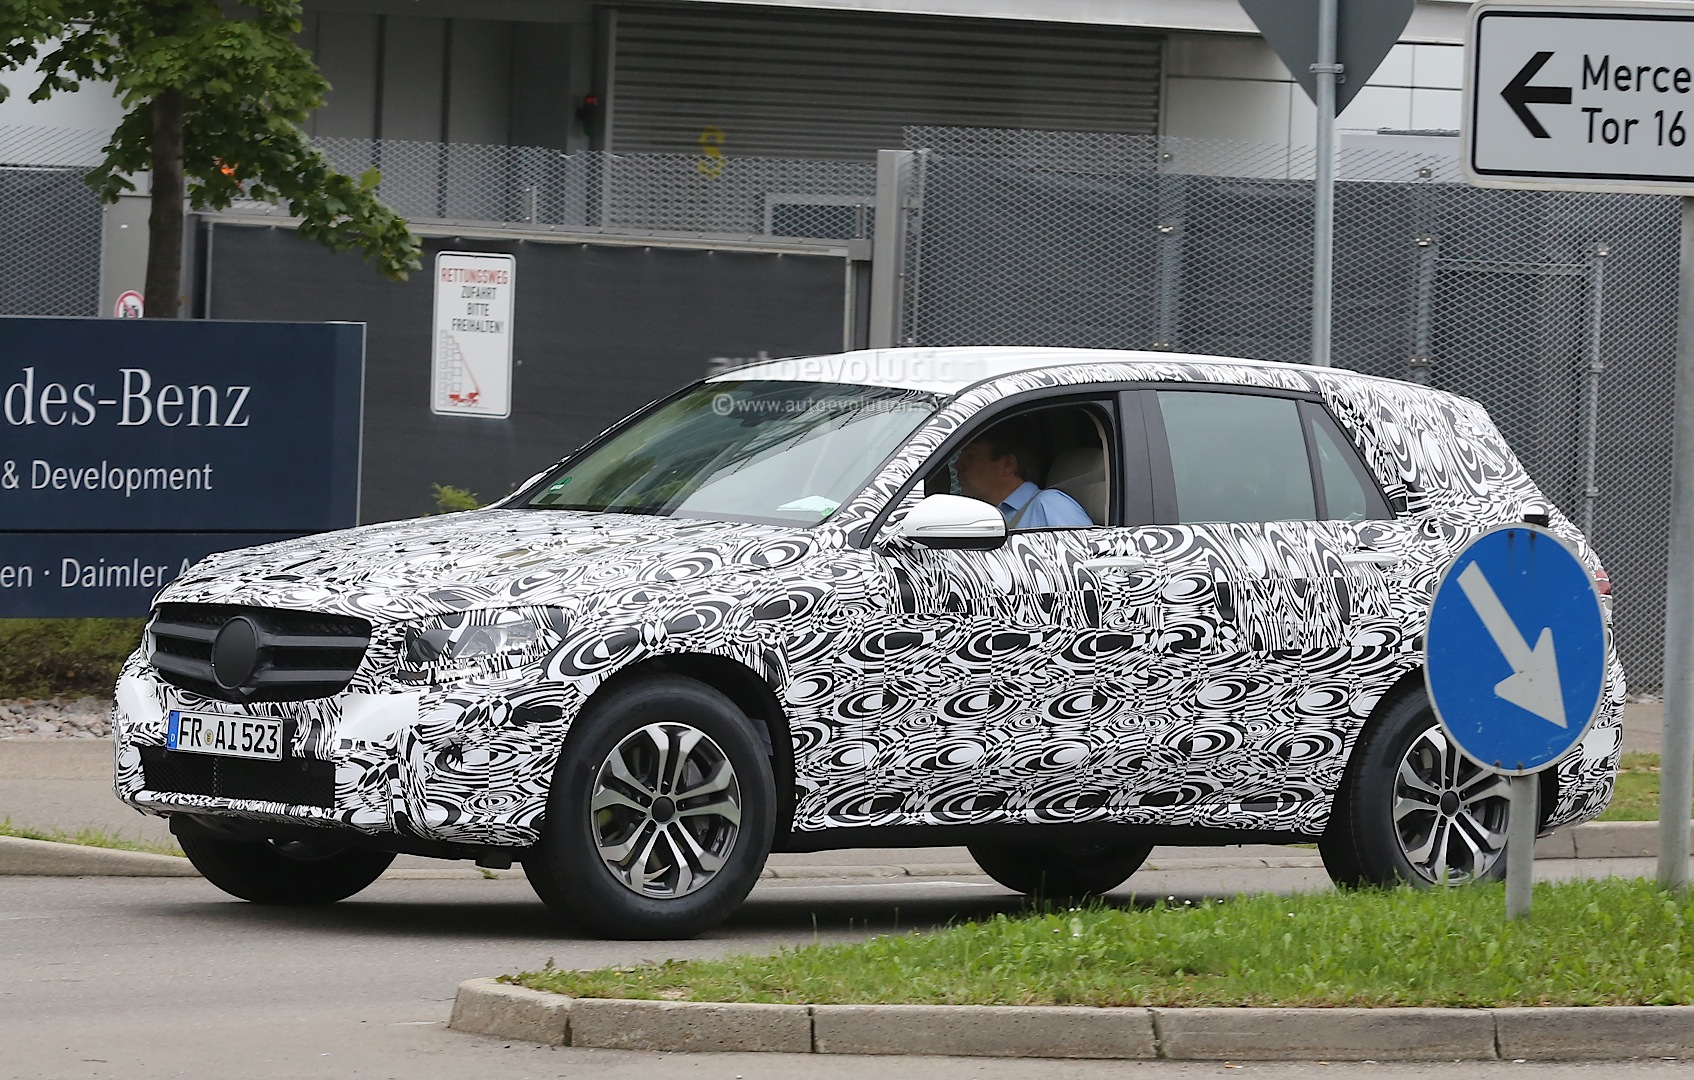 Mercedes GLK II Spied: Interior and New Design Revealed - autoevolution